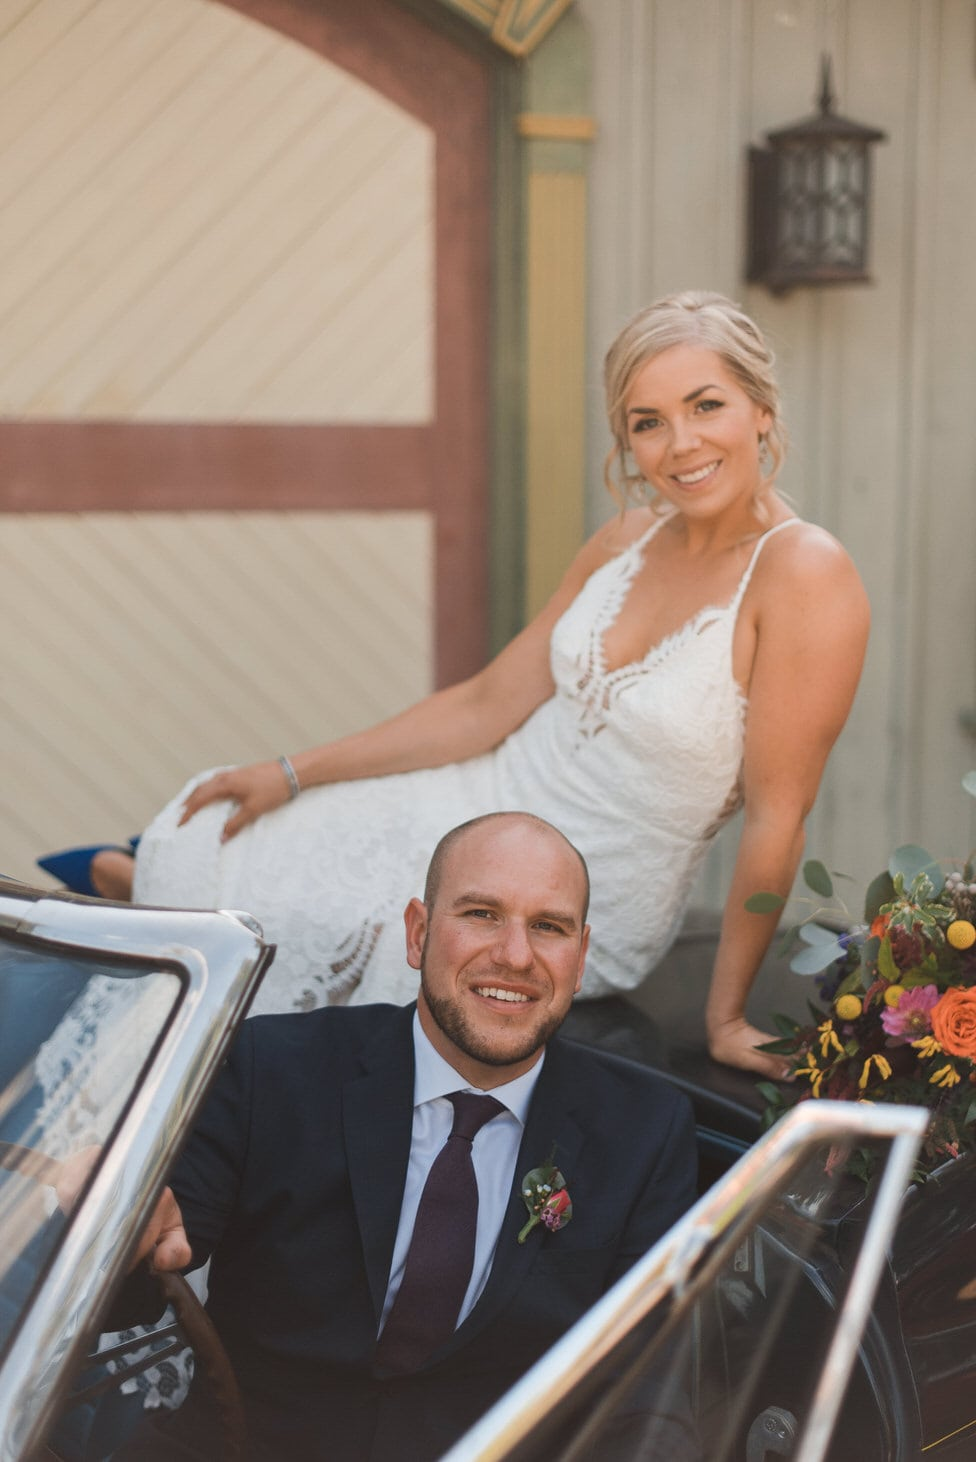 bride sits atop antique convertible with groom in driver's seat